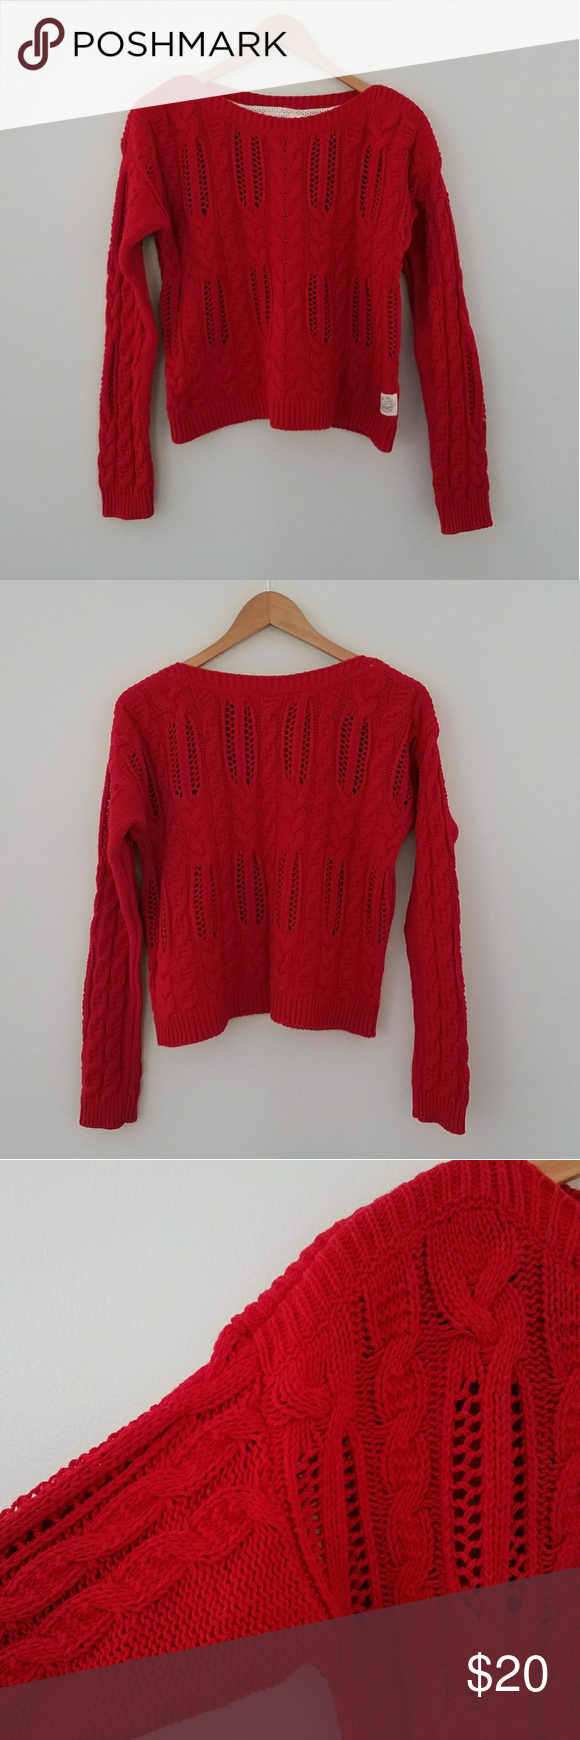 8385db959f0ec H M red oversized cable knit sweater size small